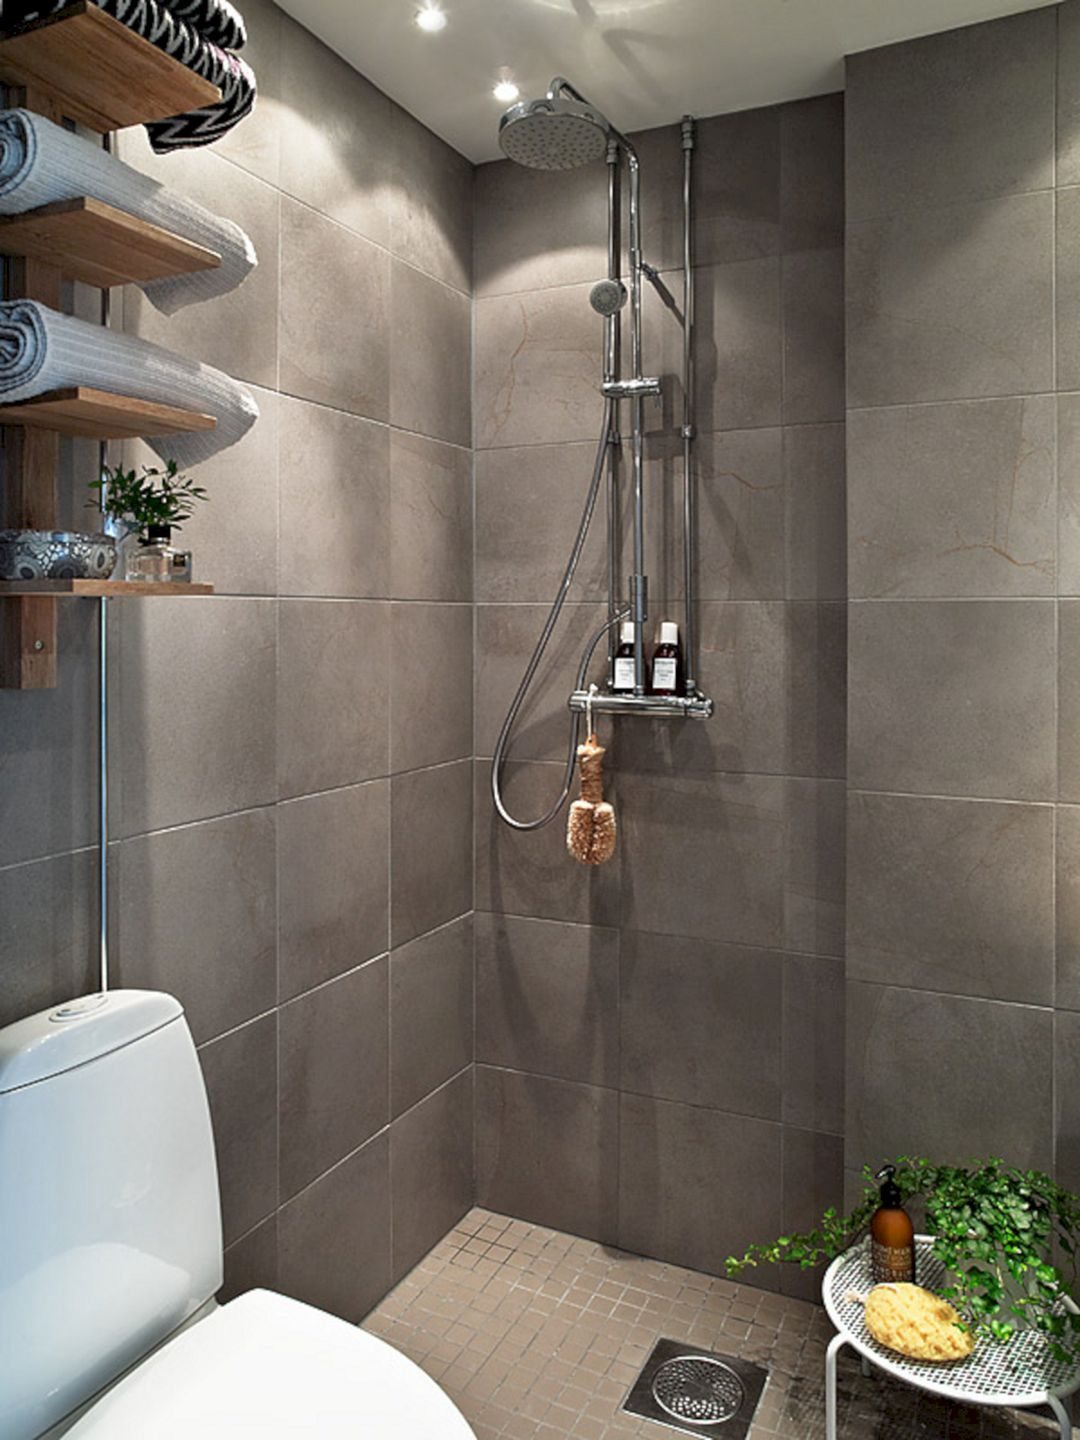 24 Top Doorless Shower Design for Small Bathroom Ideas ...